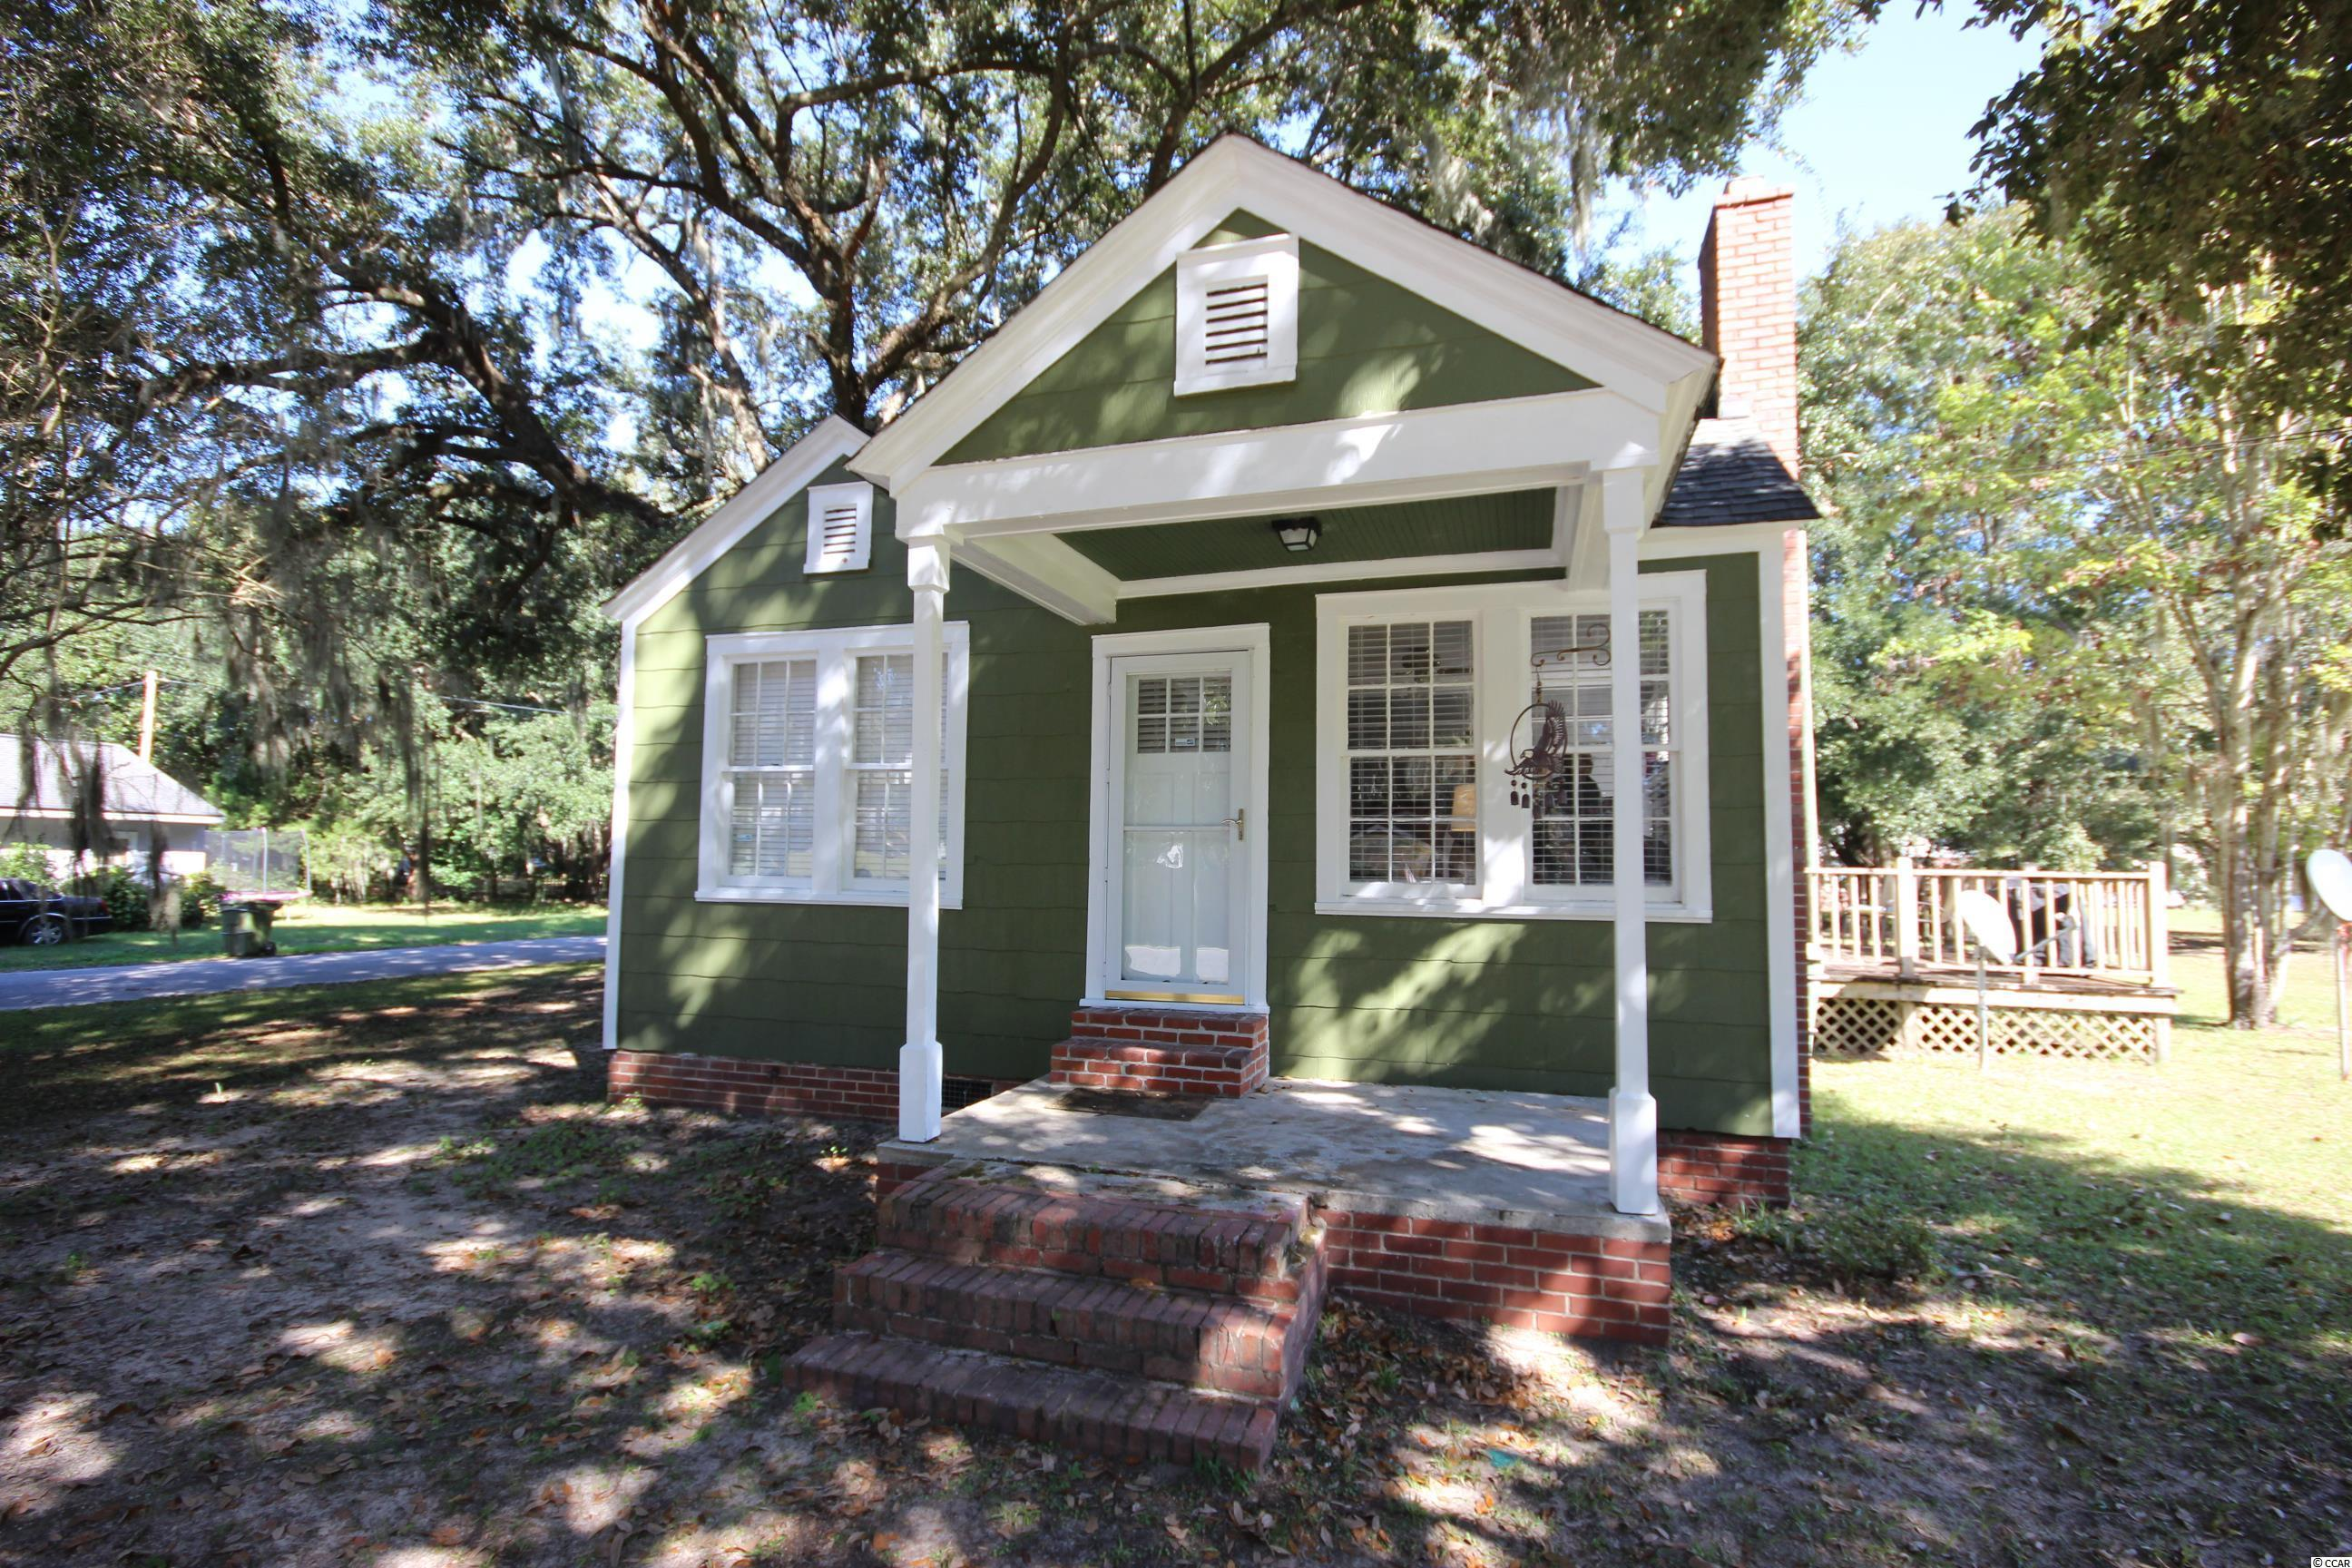 Nestled amongst gorgeous live oak trees, this neatly kept 2 Bedroom Home ~ with no HOA Fees ~ is situated directly across the street from the Bayview Park. The home offers hardwood flooring with a large deck off the kitchen and, it is bright and cheery with lots of natural light filtering in though assorted windows. Offering all one level living, with recent improvements that include an updated bathroom with a new toilet, tub and sink. All appliances convey with the sale of the home including the newer washer, dryer and refrigerator. The shed located on the property was recently painted as were both the interior and exterior of the home. Located within close proximity to both Historic Downtown Georgetown and the Harbor Walk, the home's location is convenient to all this beautiful area has to offer including an abundance of incredible restaurants, unique shops, legendary golf courses, and a large selection of water / leisure activities including boating / fishing ~ as well as miles of gorgeous ocean beach to explore and enjoy.